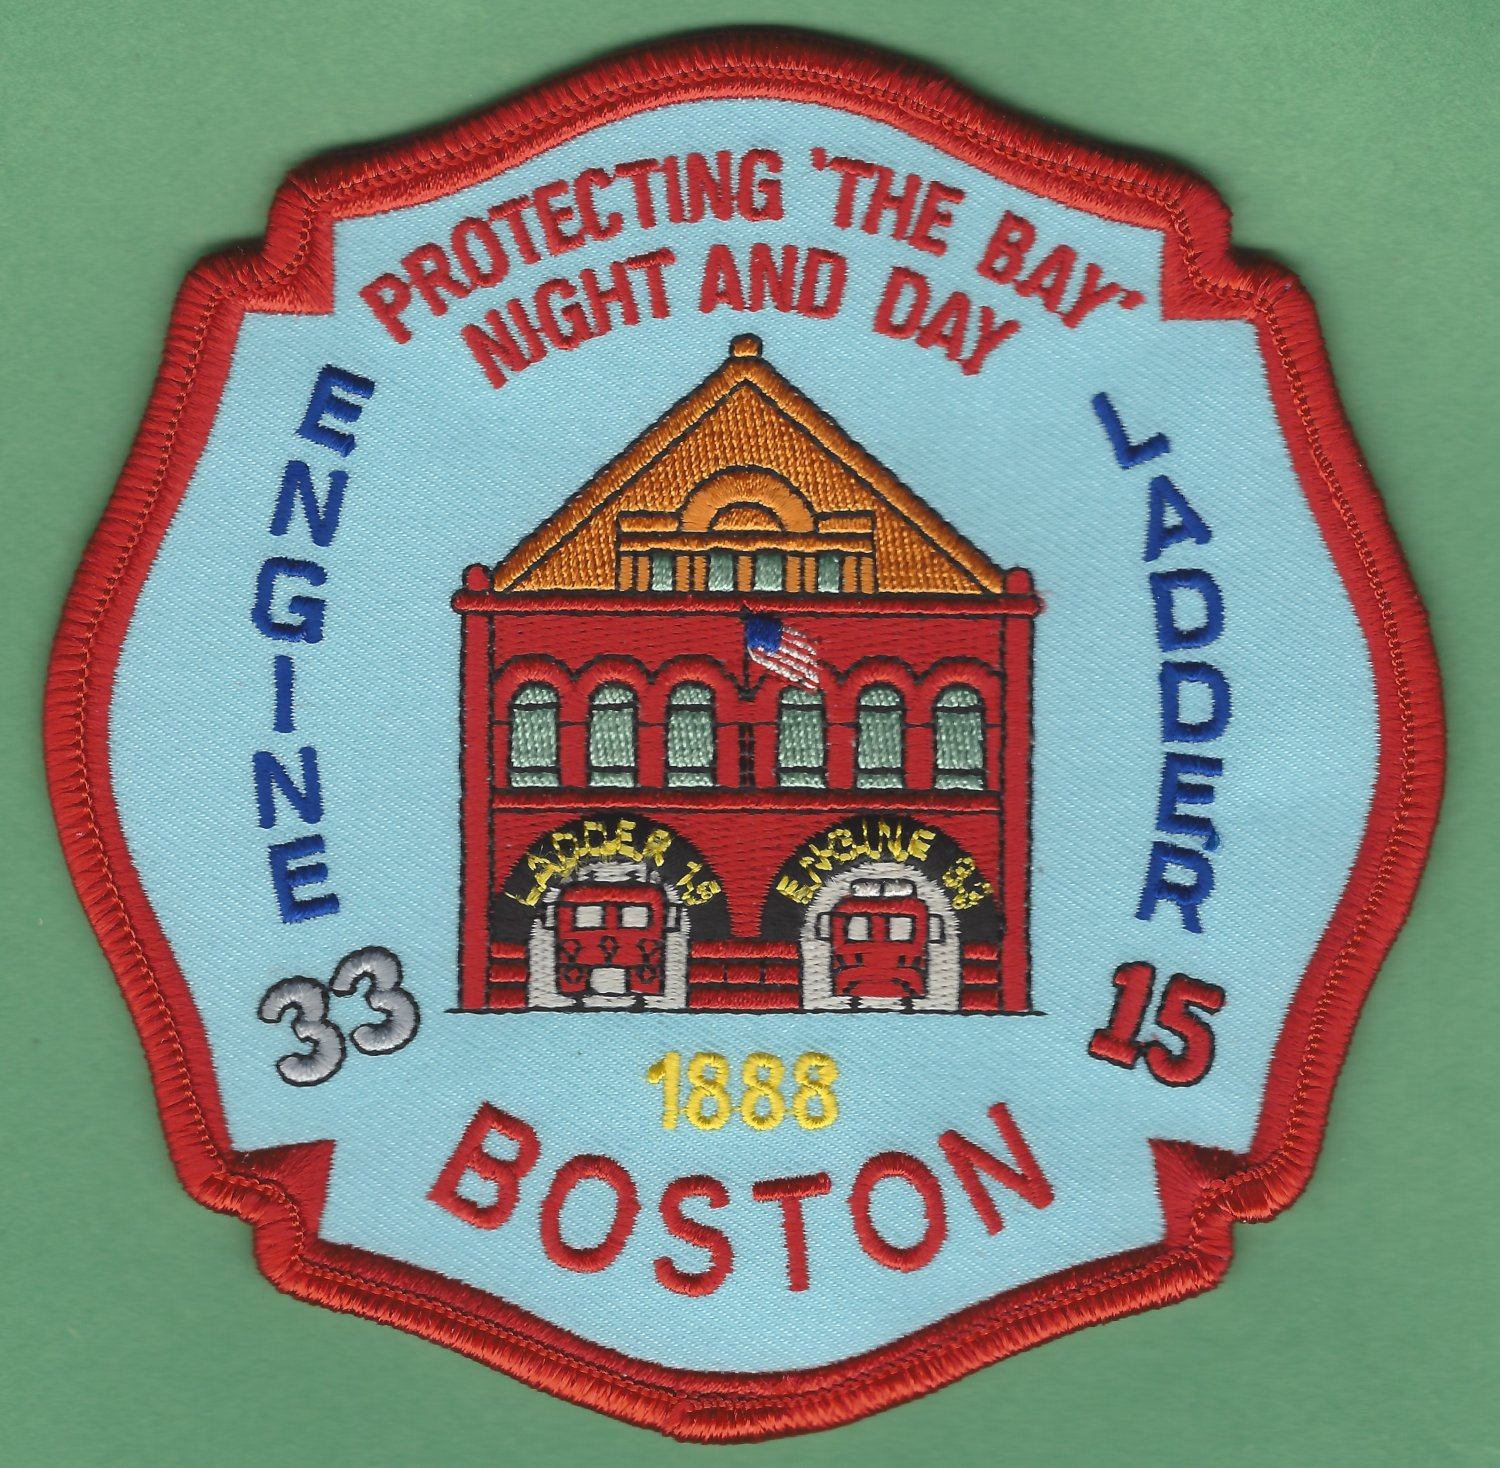 Boston Fire Department Engine 33 Ladder 15 Fire Company Patch